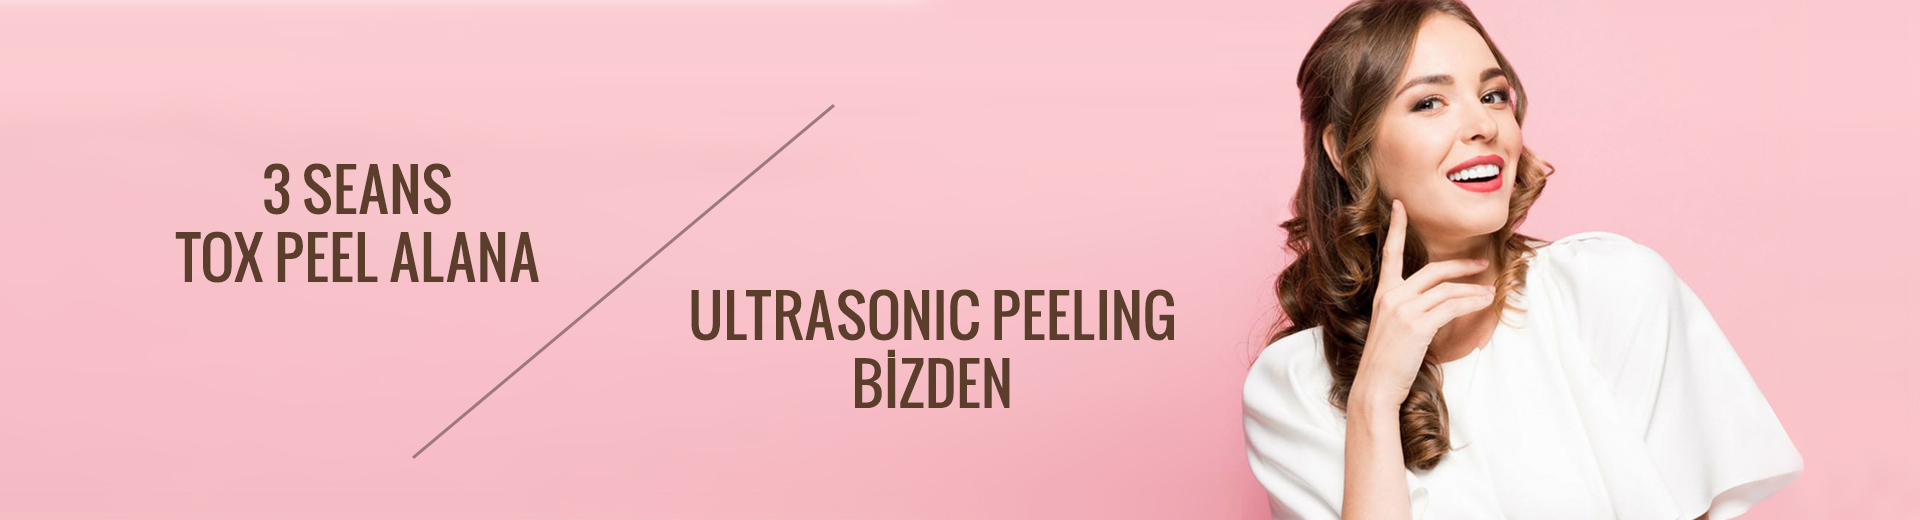 ultrasonik peeling